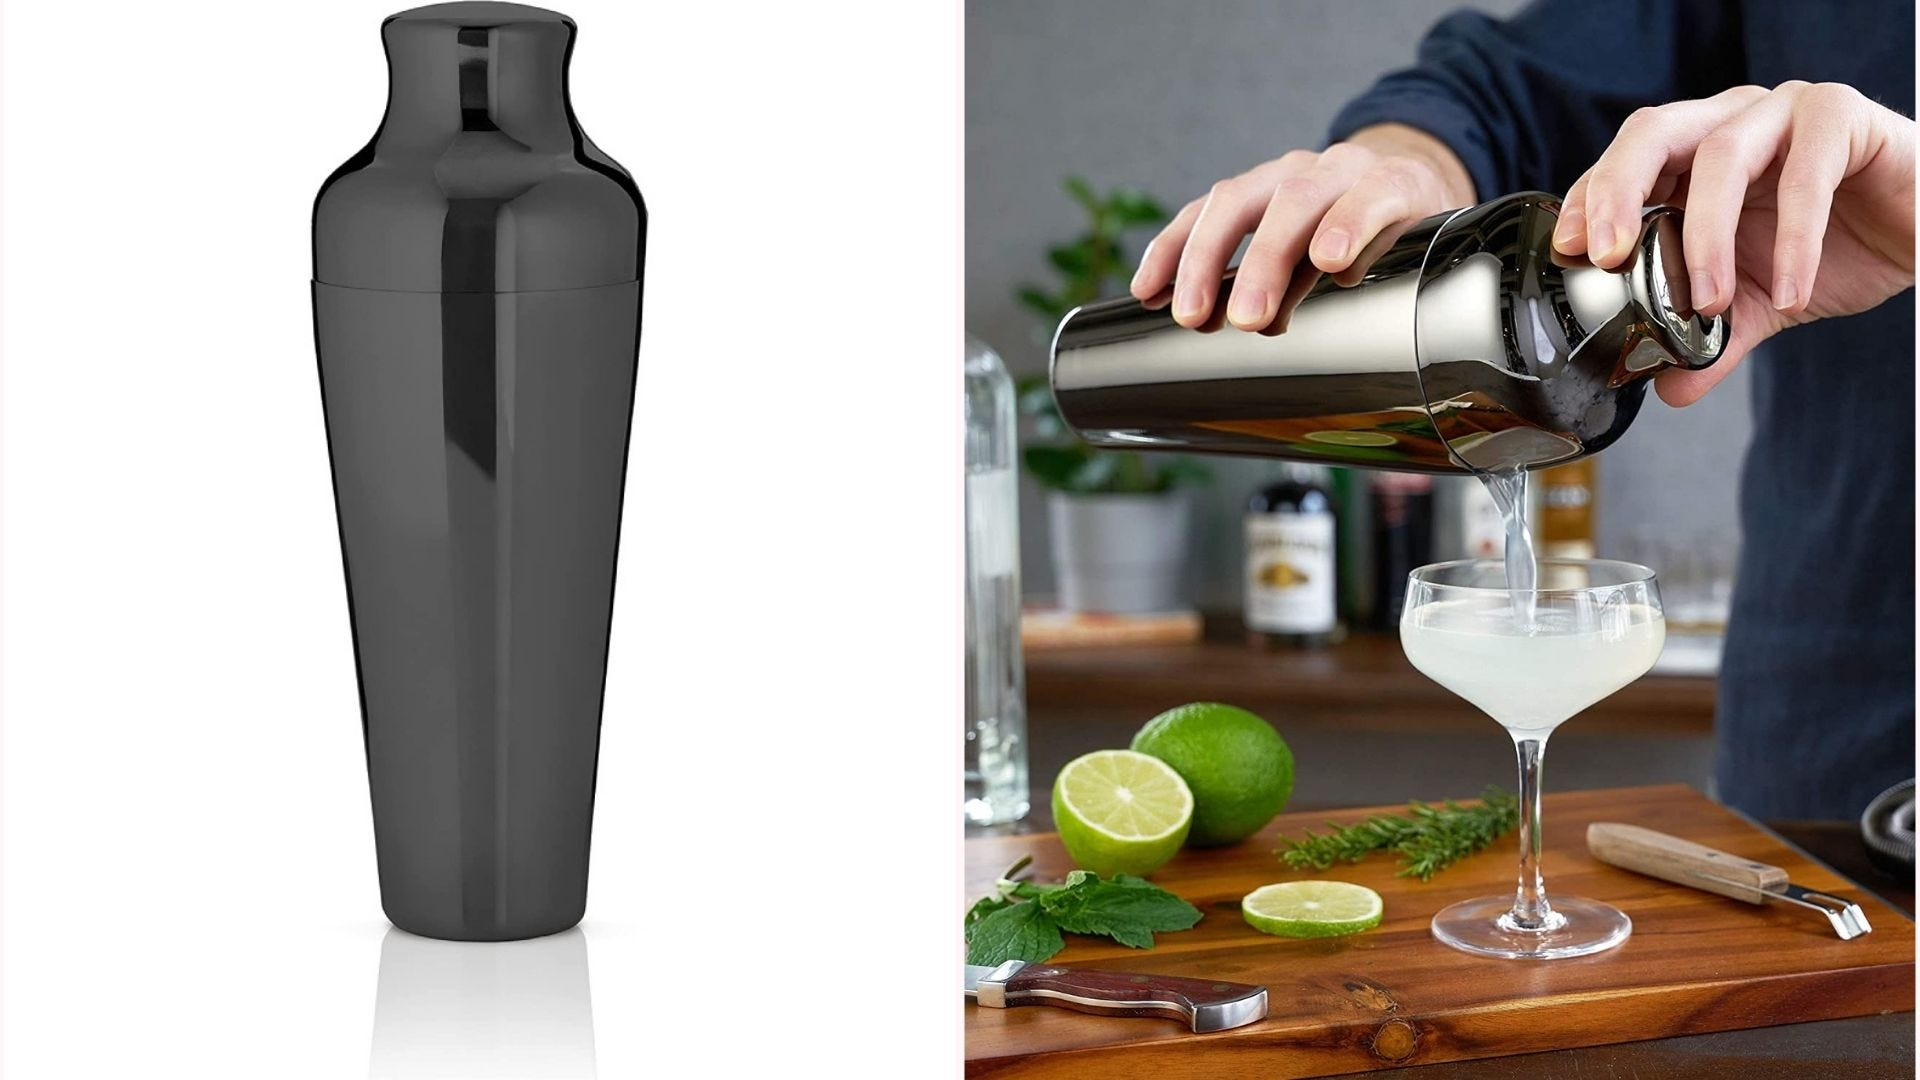 gunmetal black Parisian shaker with lid in place on top of cup; a person pours cocktail from it in image on the right